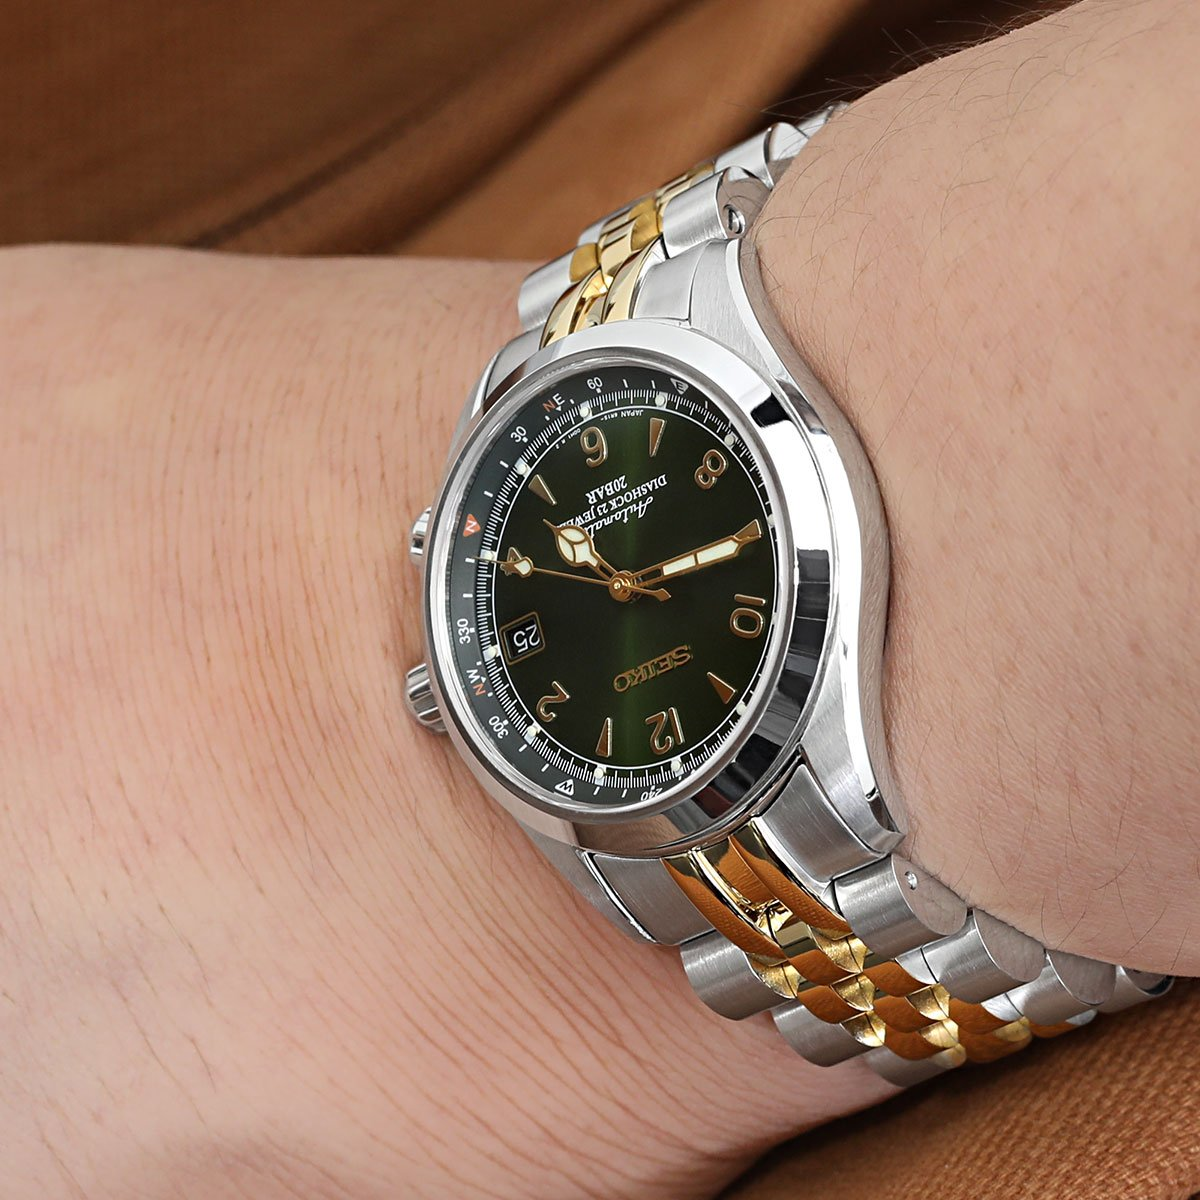 c10e85d9356 20mm ANGUS Jubilee 316L Stainless Steel Watch Bracelet for Seiko Alpinist  SARB017